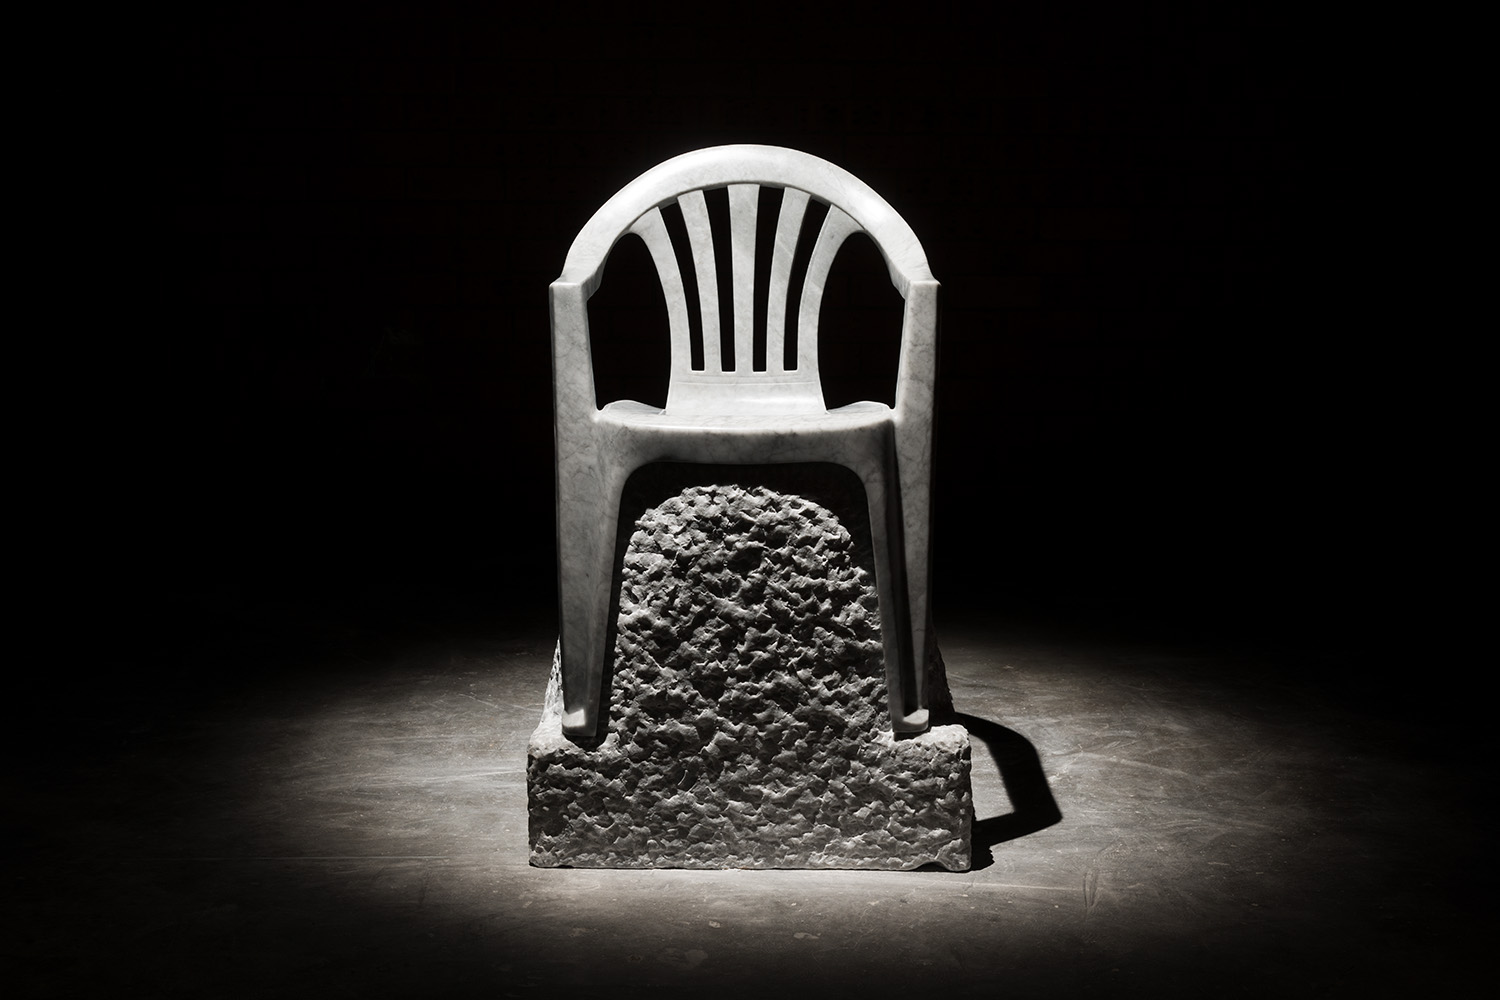 The Monobloc Throne